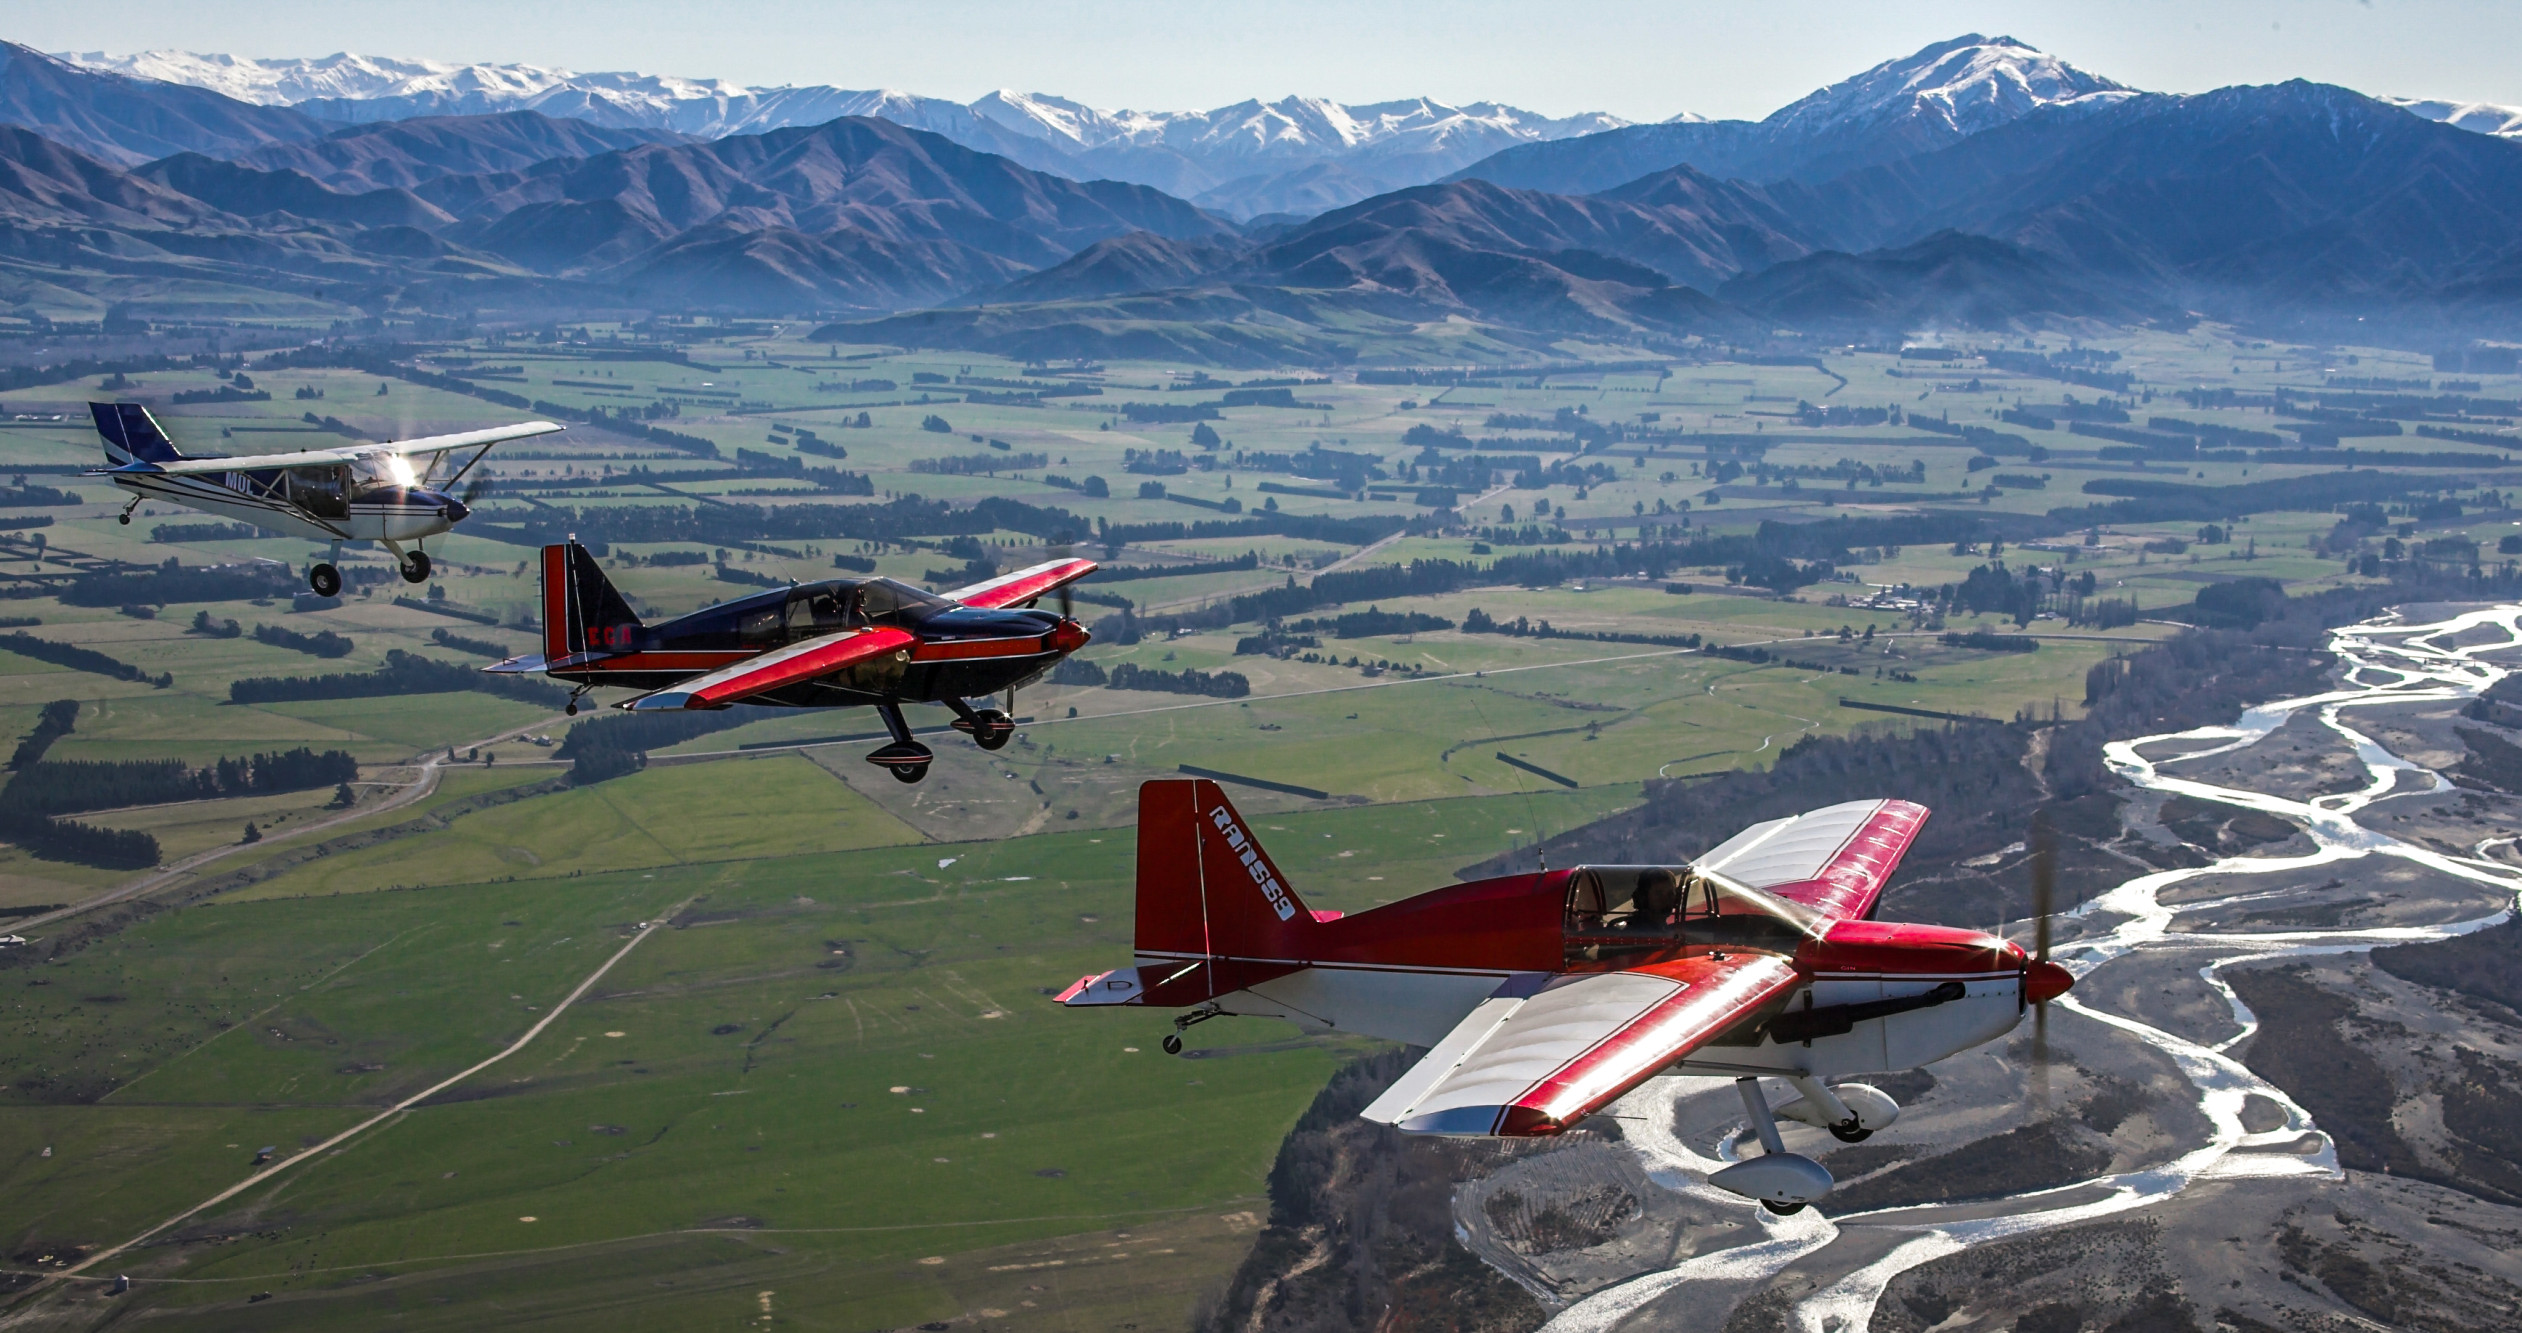 Formation of Local RANS Aircraft over the Rangitata River